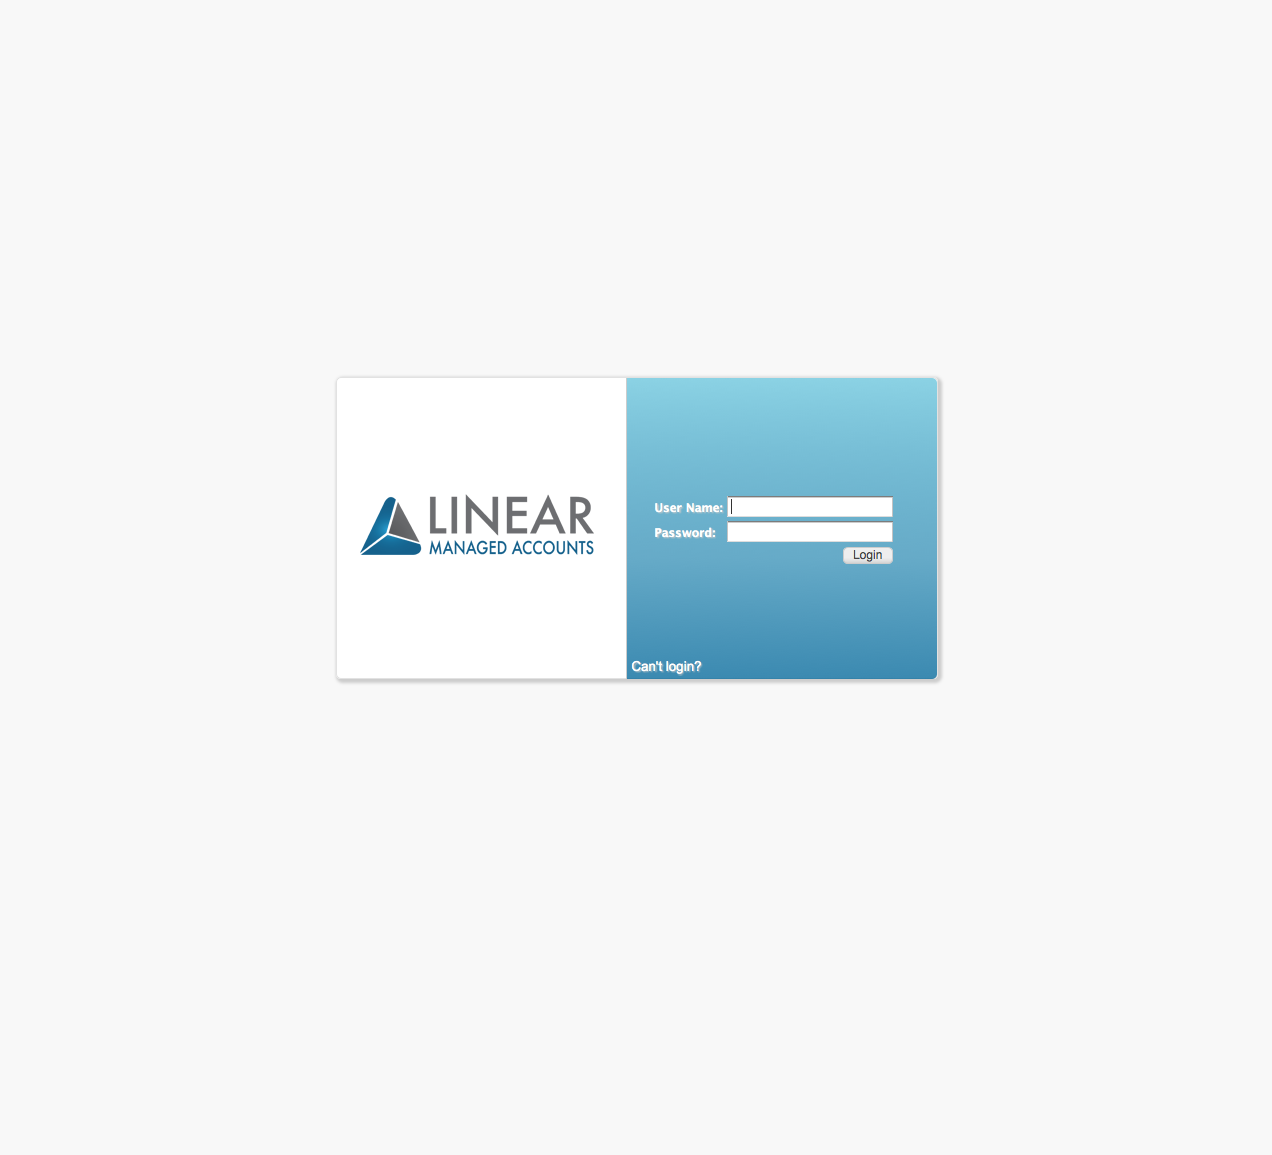 Linear Managed Accounts